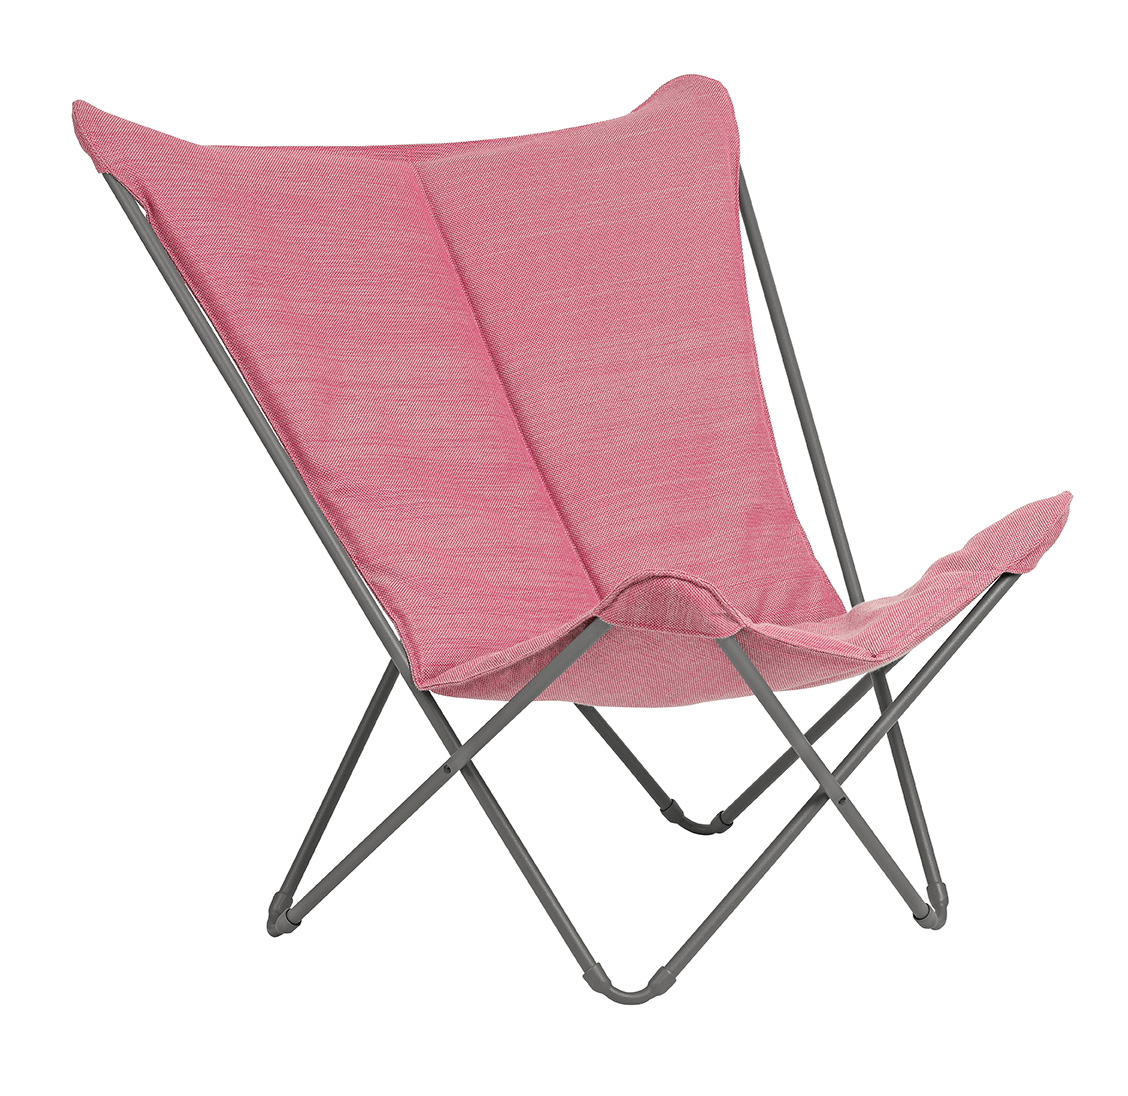 Lounge Chair - Titane Steel Frame - Orchid Hedona Fabric